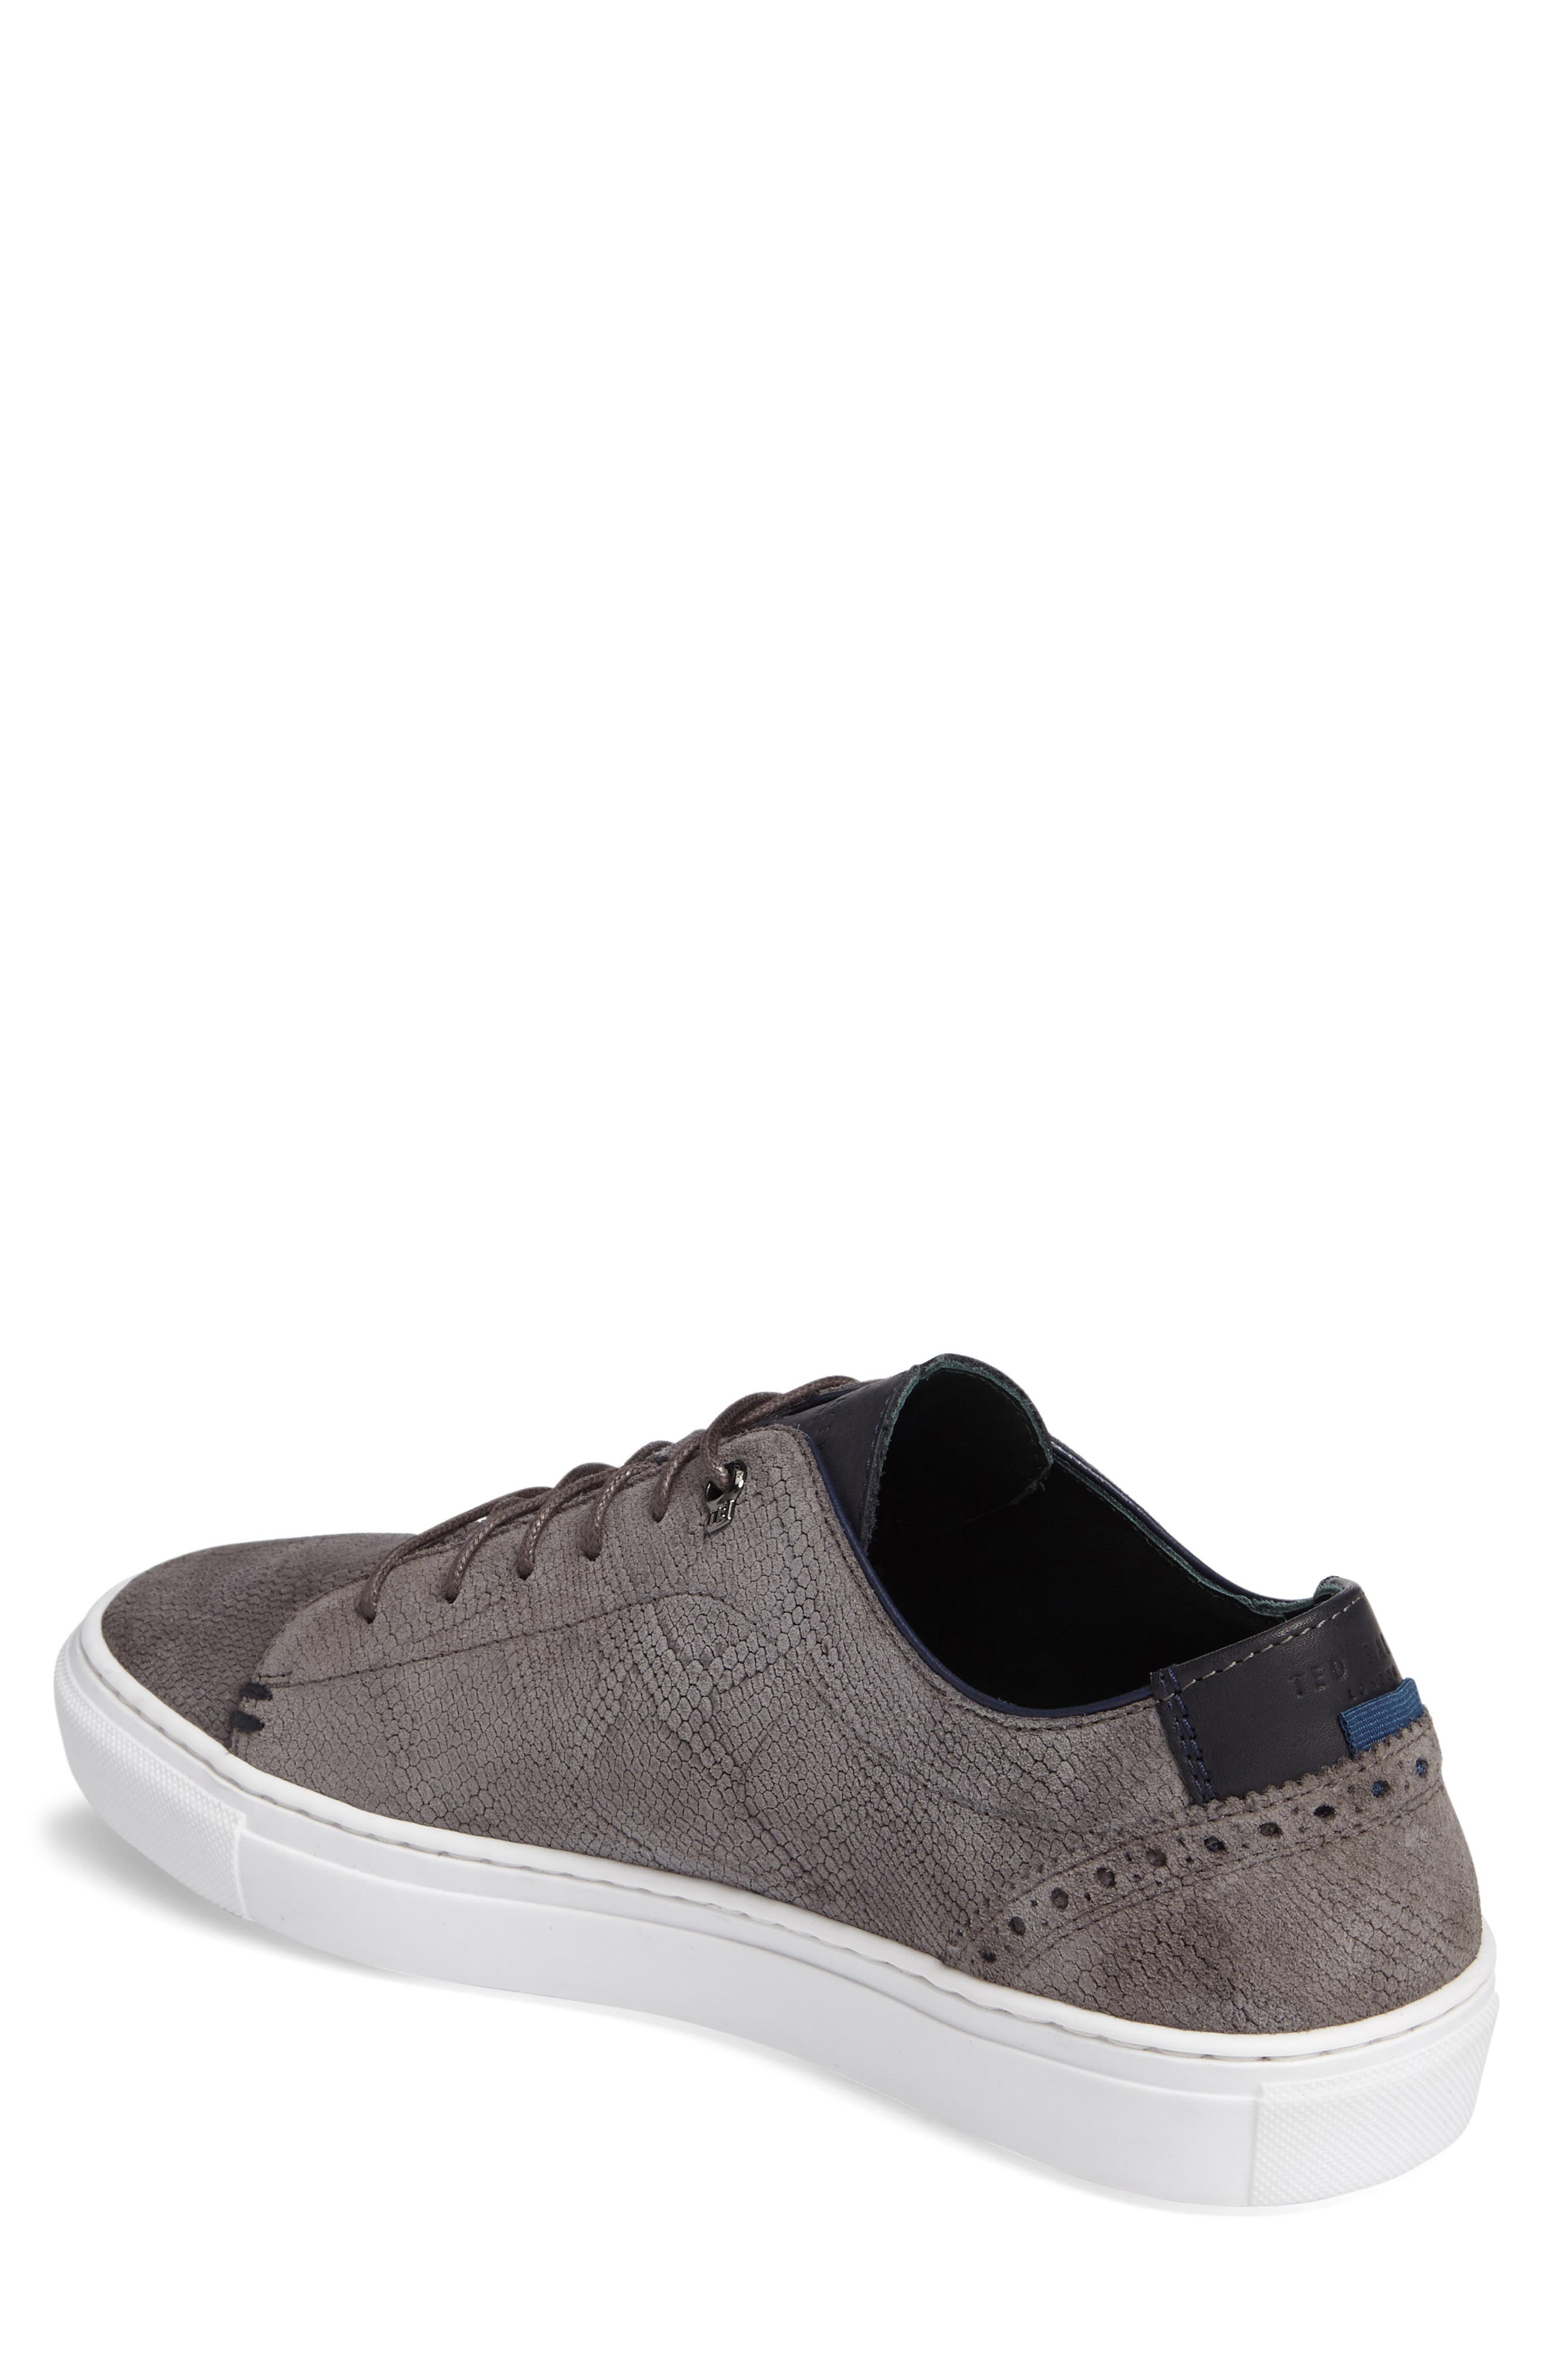 Duke Snake Embossed Sneaker,                             Alternate thumbnail 2, color,                             Dark Grey Suede